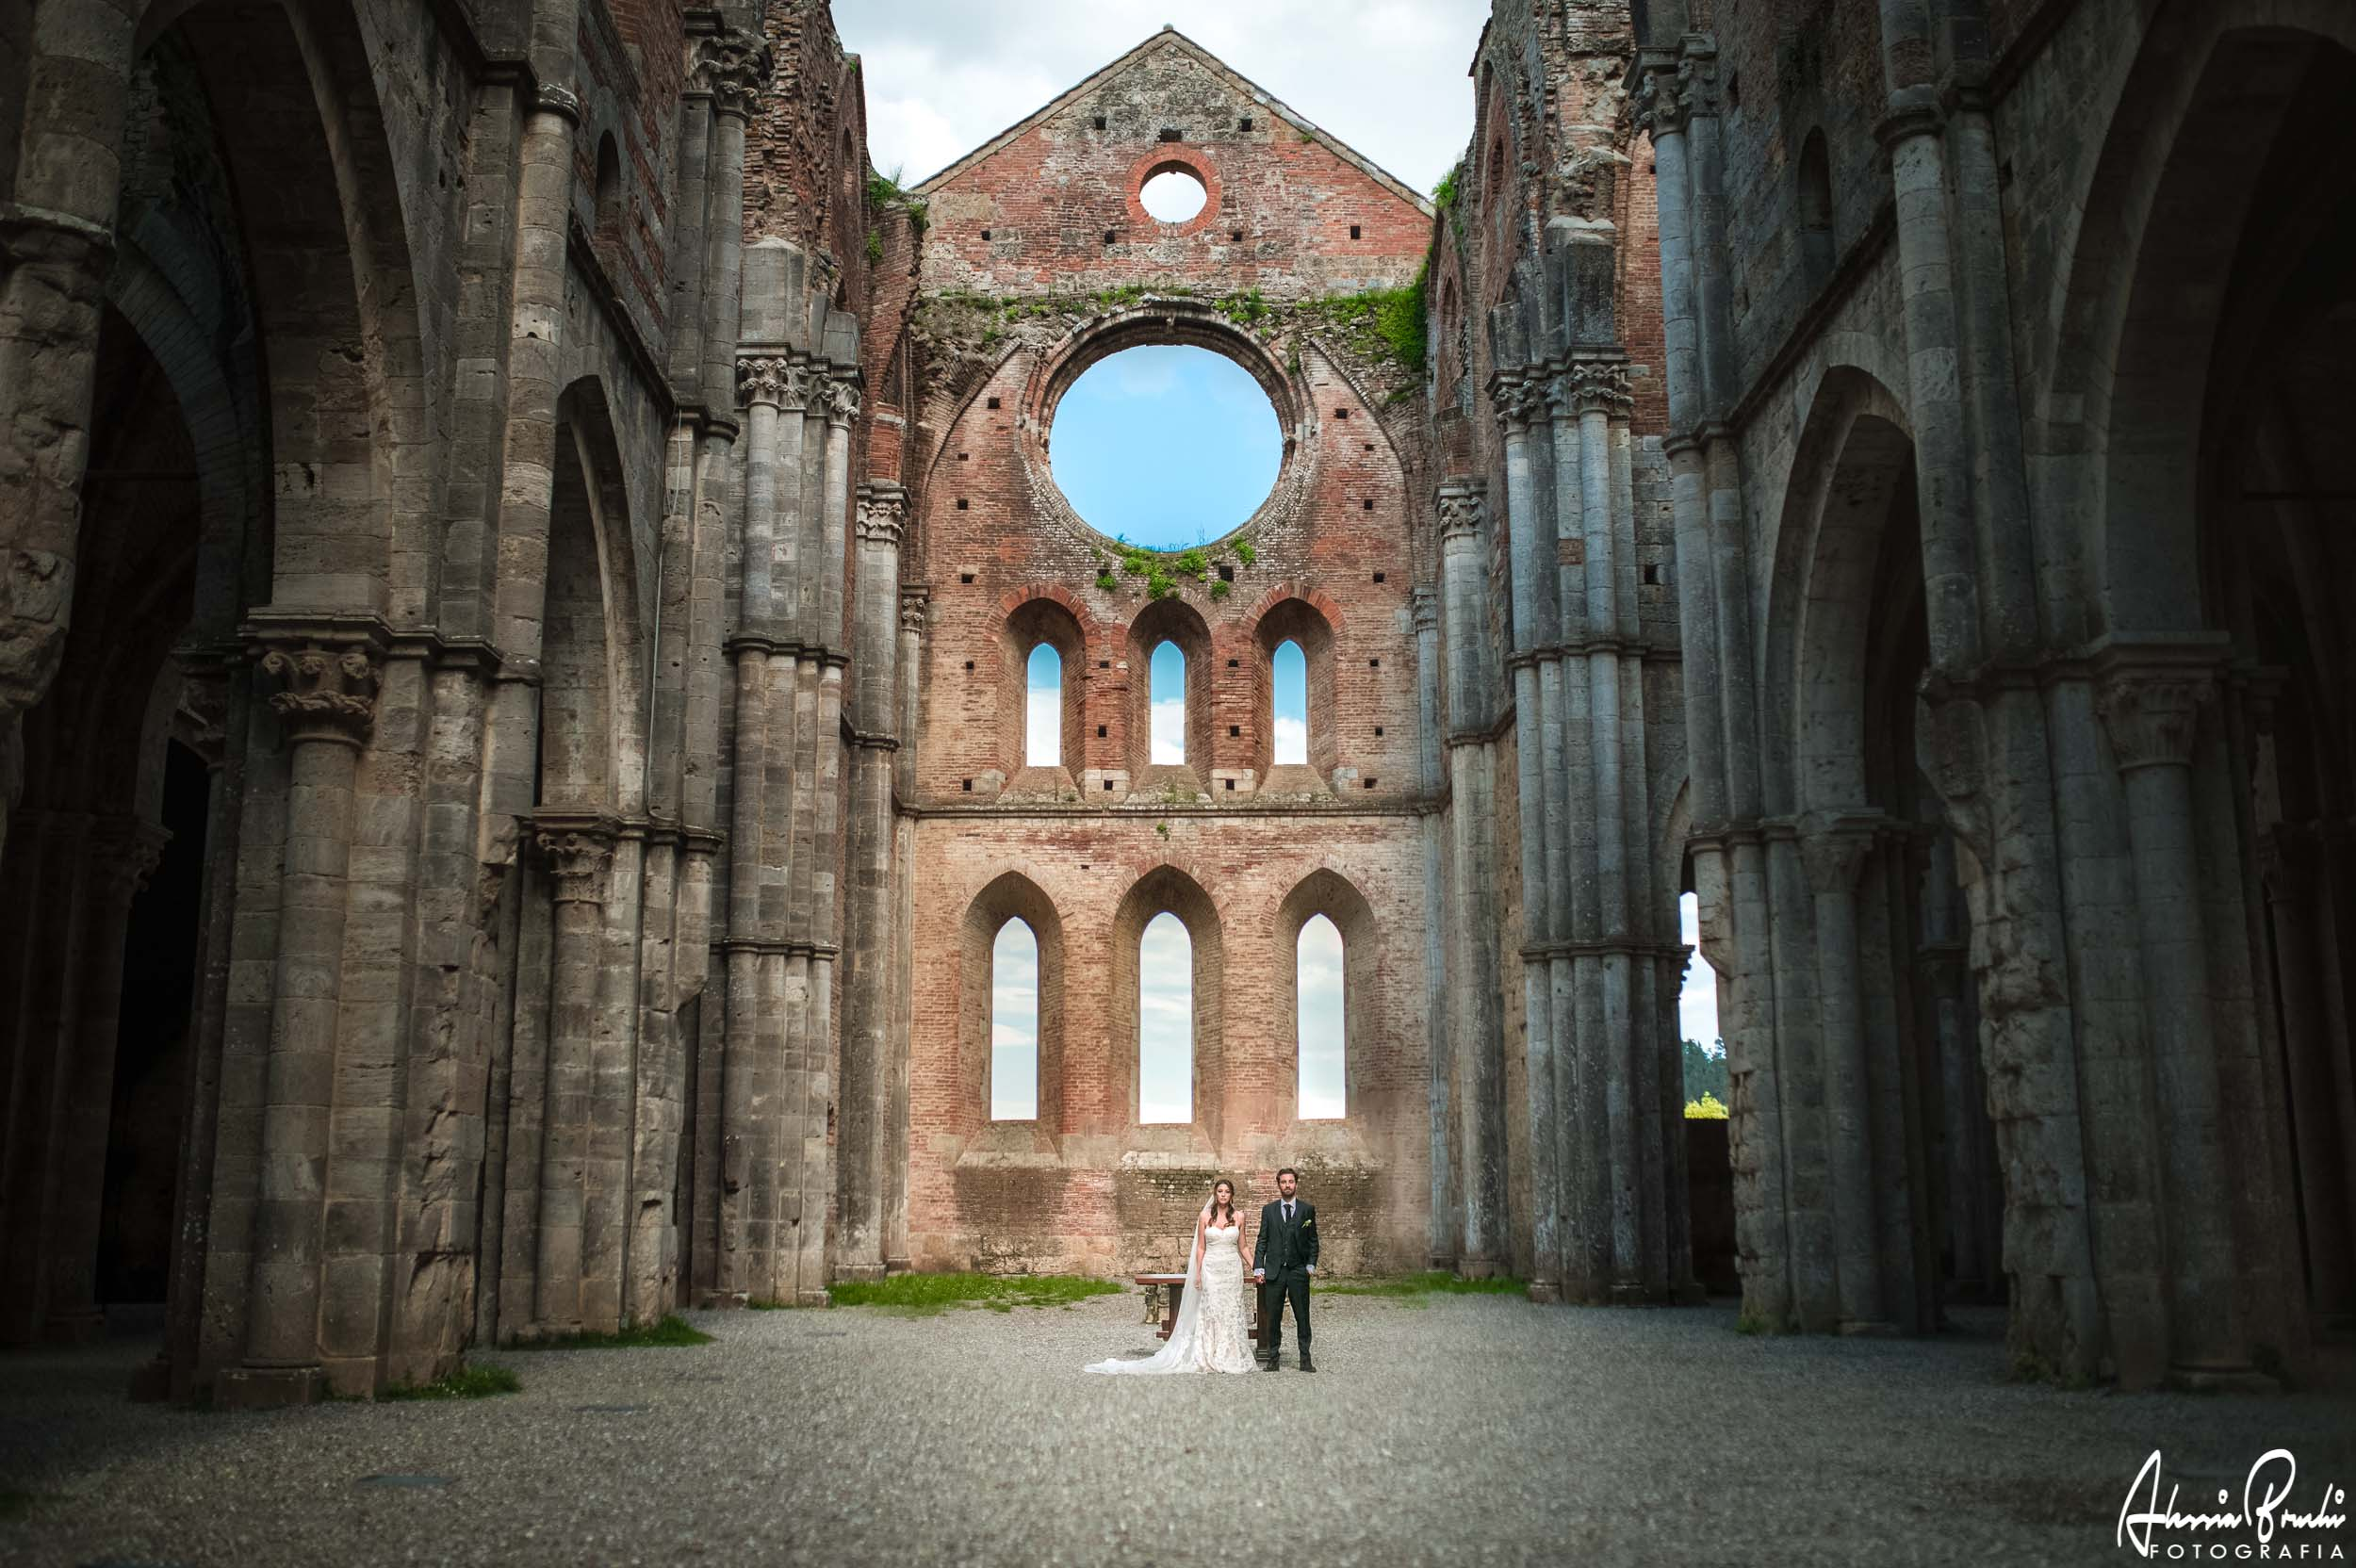 romantic destination wedding in san galgano tuscany - alessia bruchi fotografia